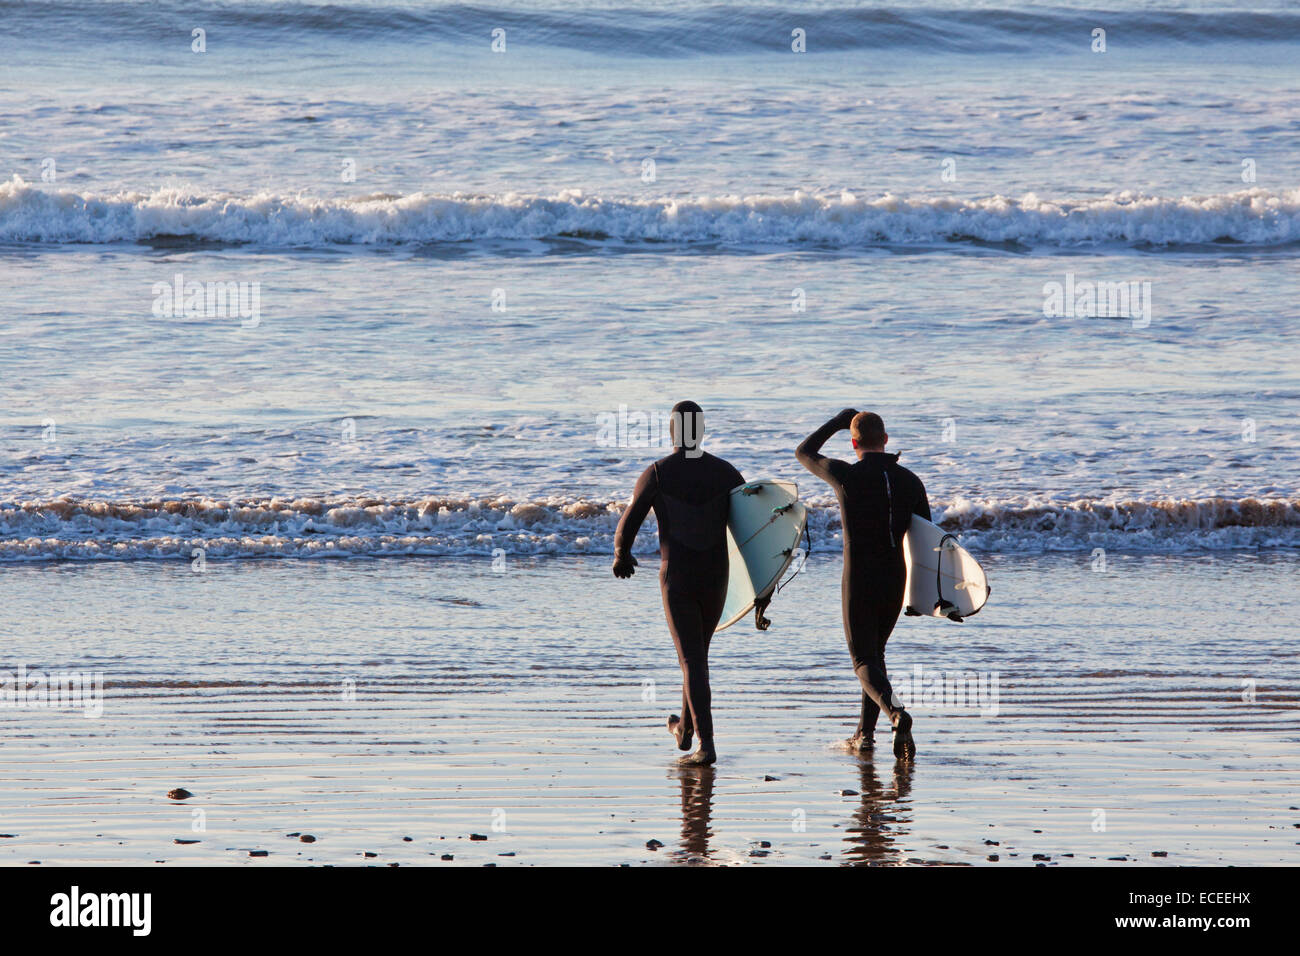 Two surfers on Saunton sands UK prior to entering the water to begin a session riding the waves - Stock Image